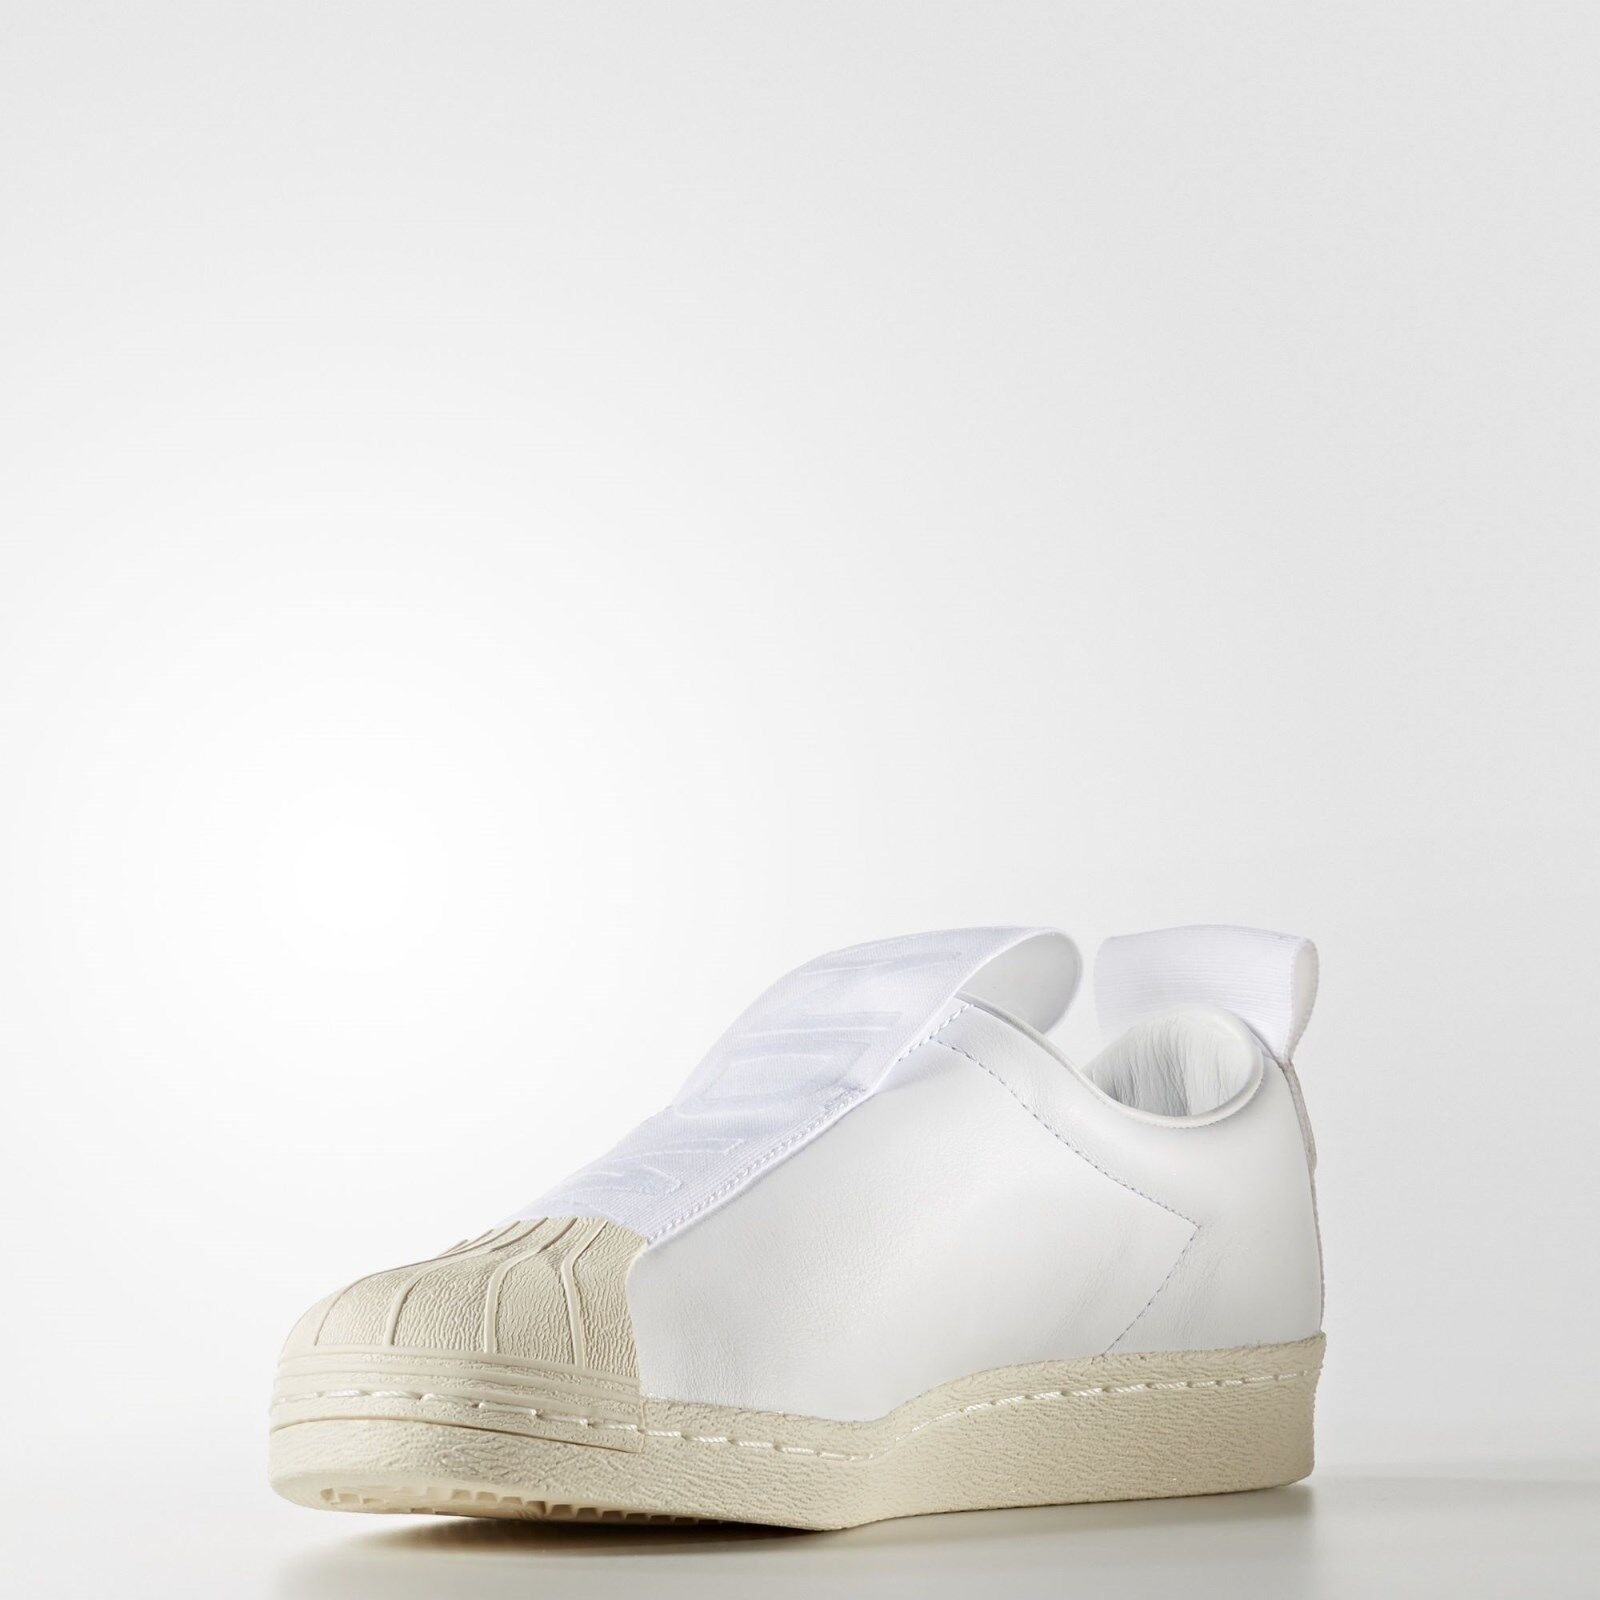 Adidas i originali delle superstar pc i Adidas mocassini taglia 9 noi by9139 f6c2cc